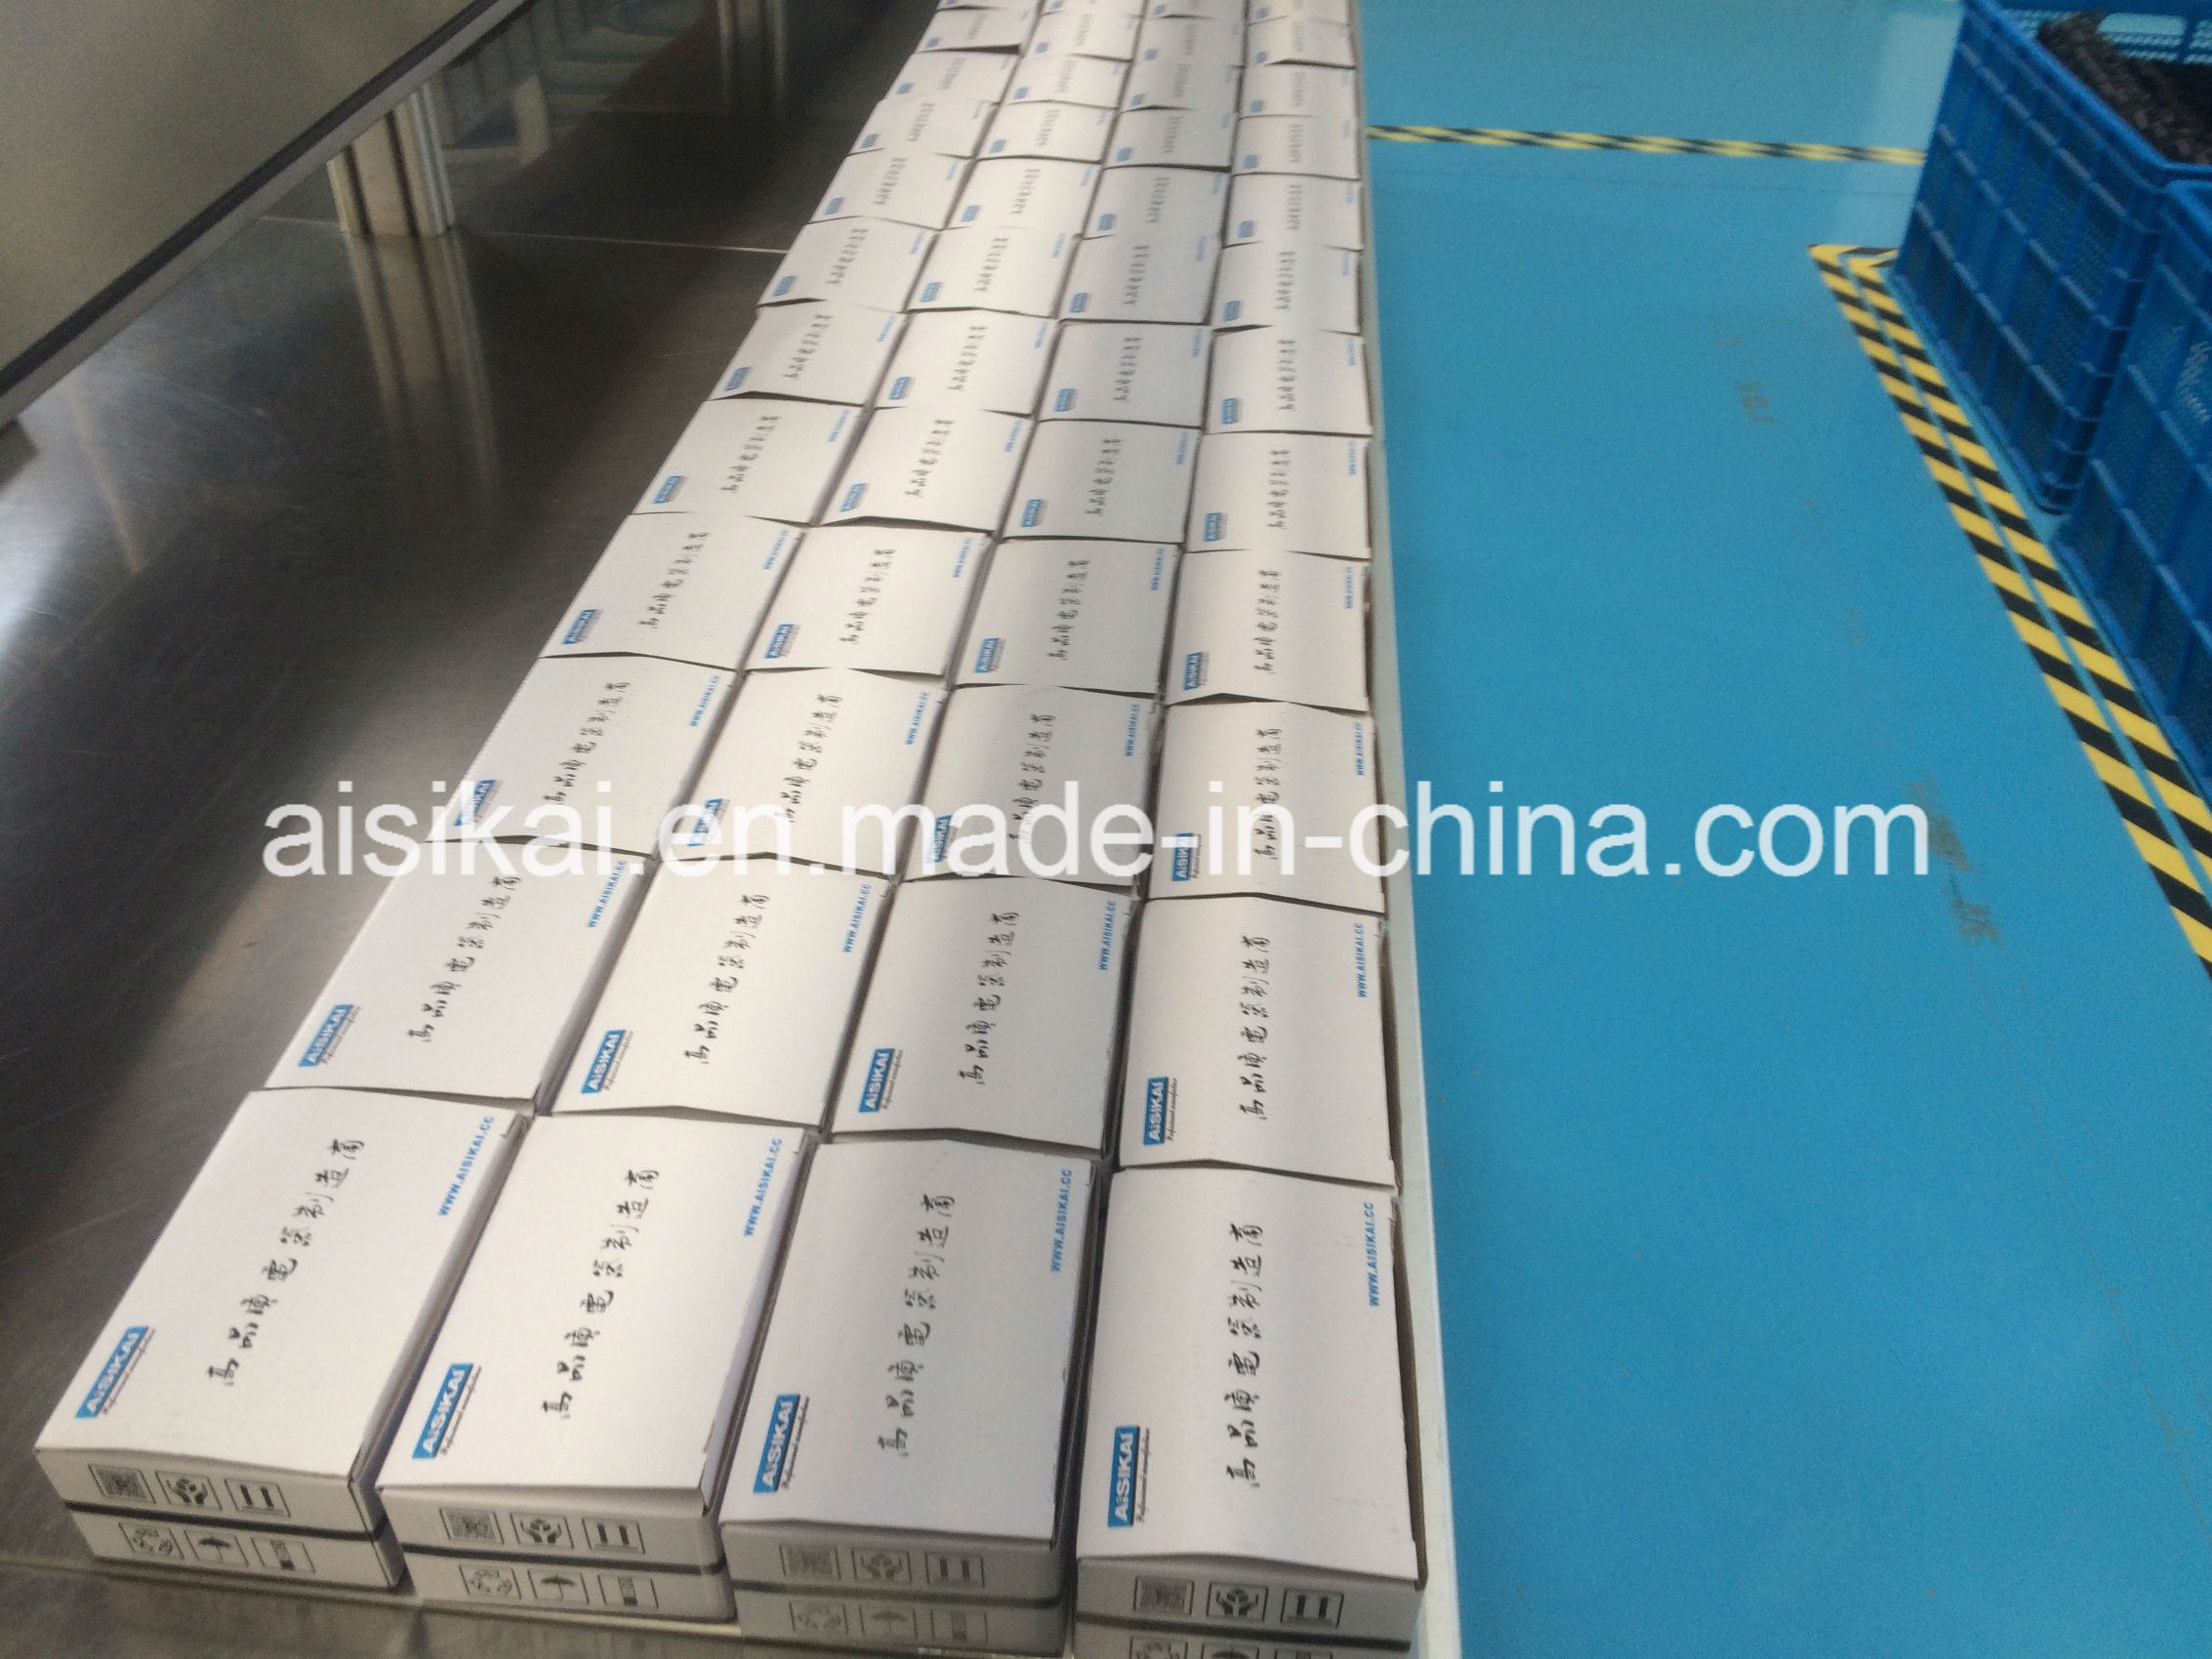 China 125A 2poles Miniature Circuit Breaker in House Photos ...